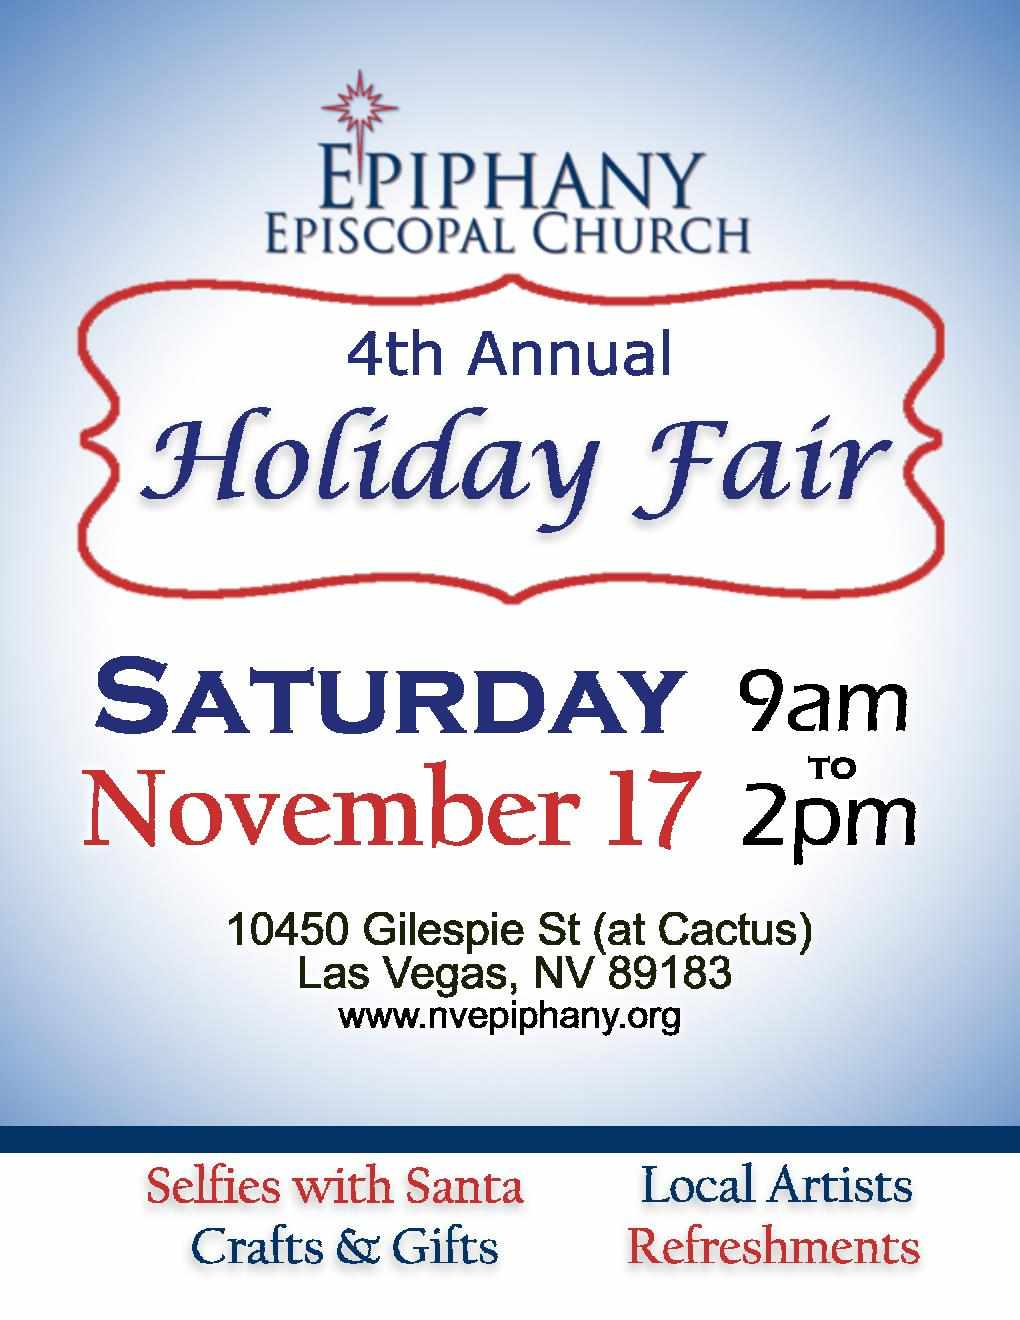 Epiphany Episcopal Church Holiday Fair Right Song Right Time